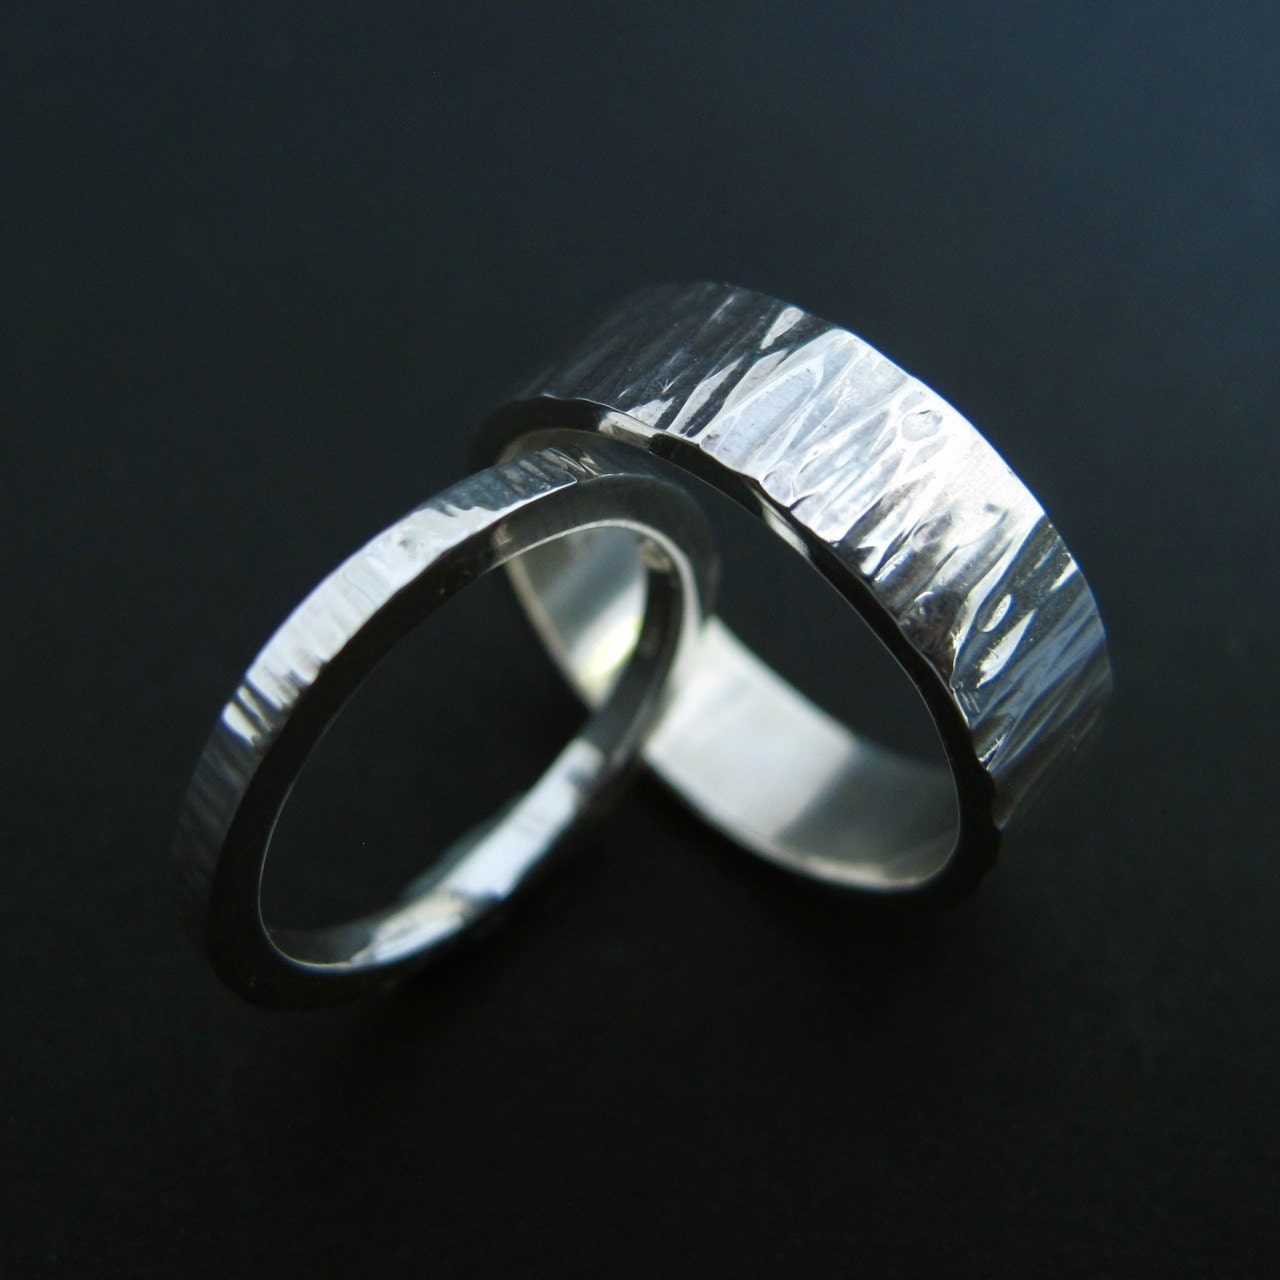 river rings modern hammered sterling silver promise by erga